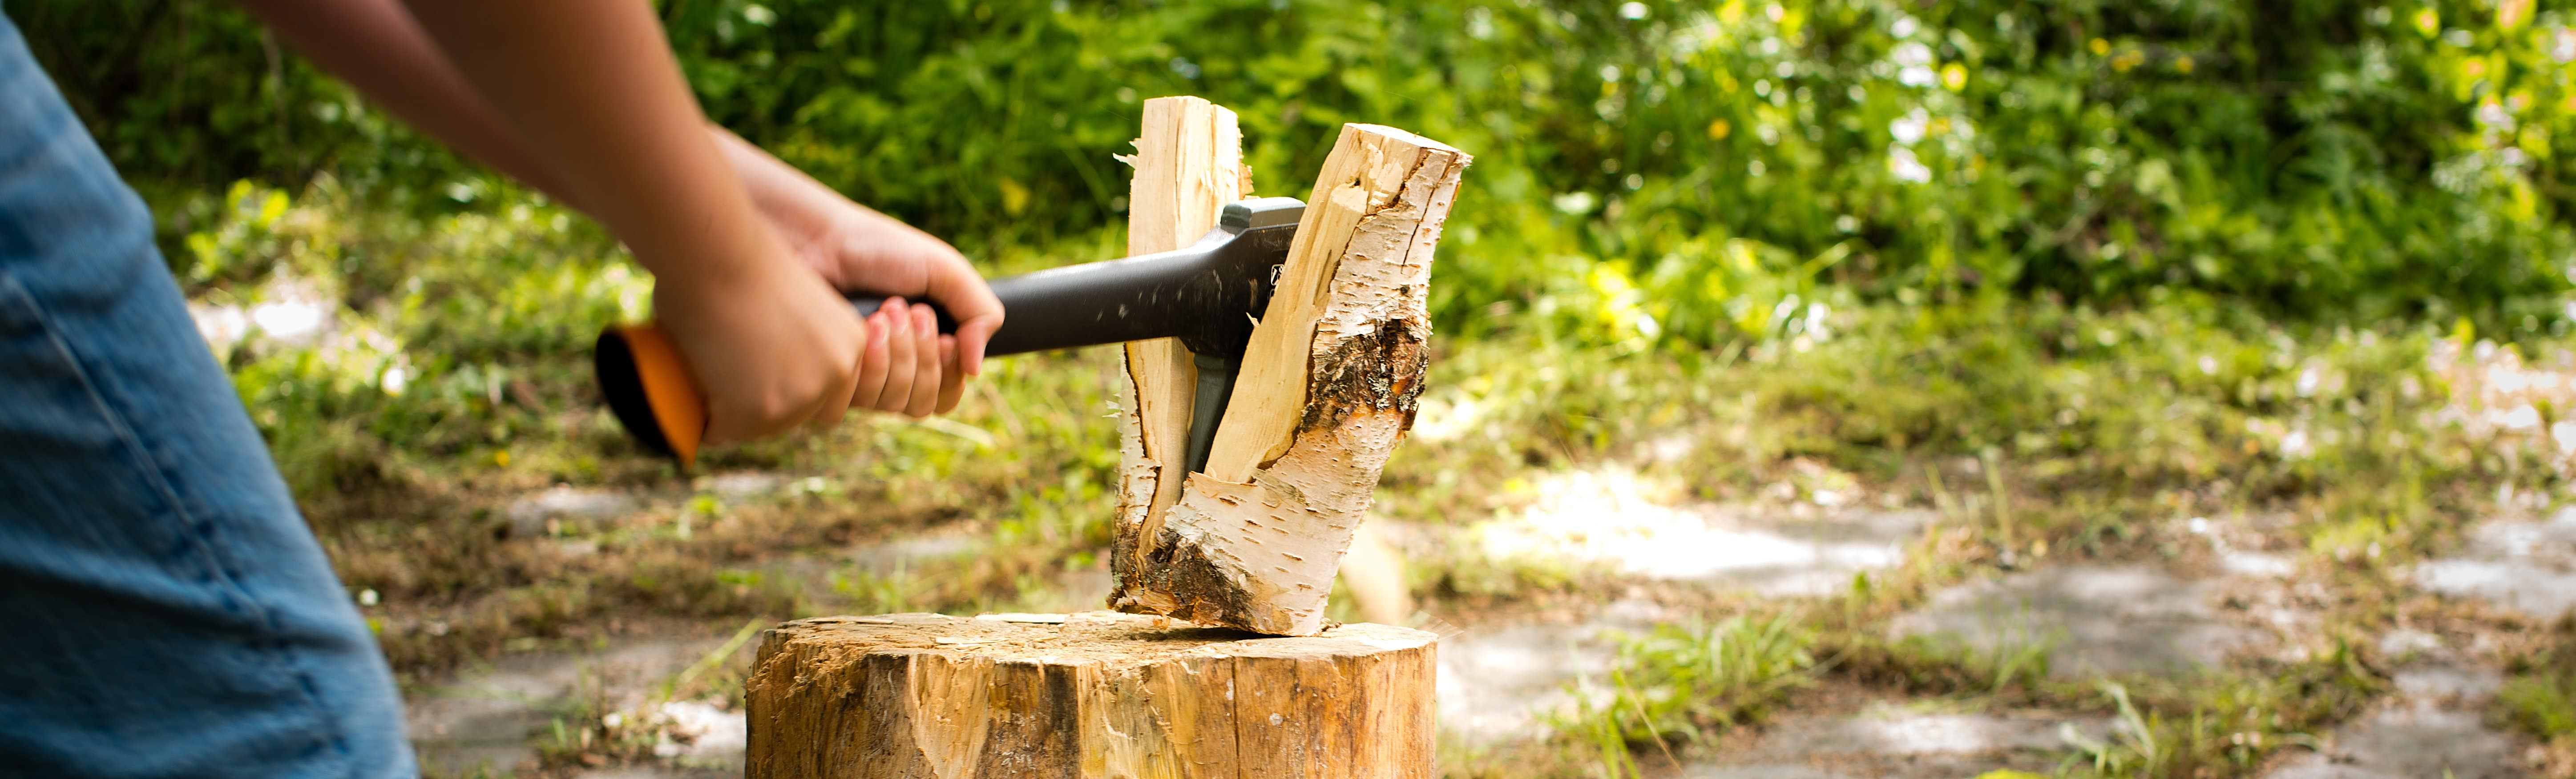 6 Best Splitting Axes (Sept  2019) - Reviews & Buying Guide